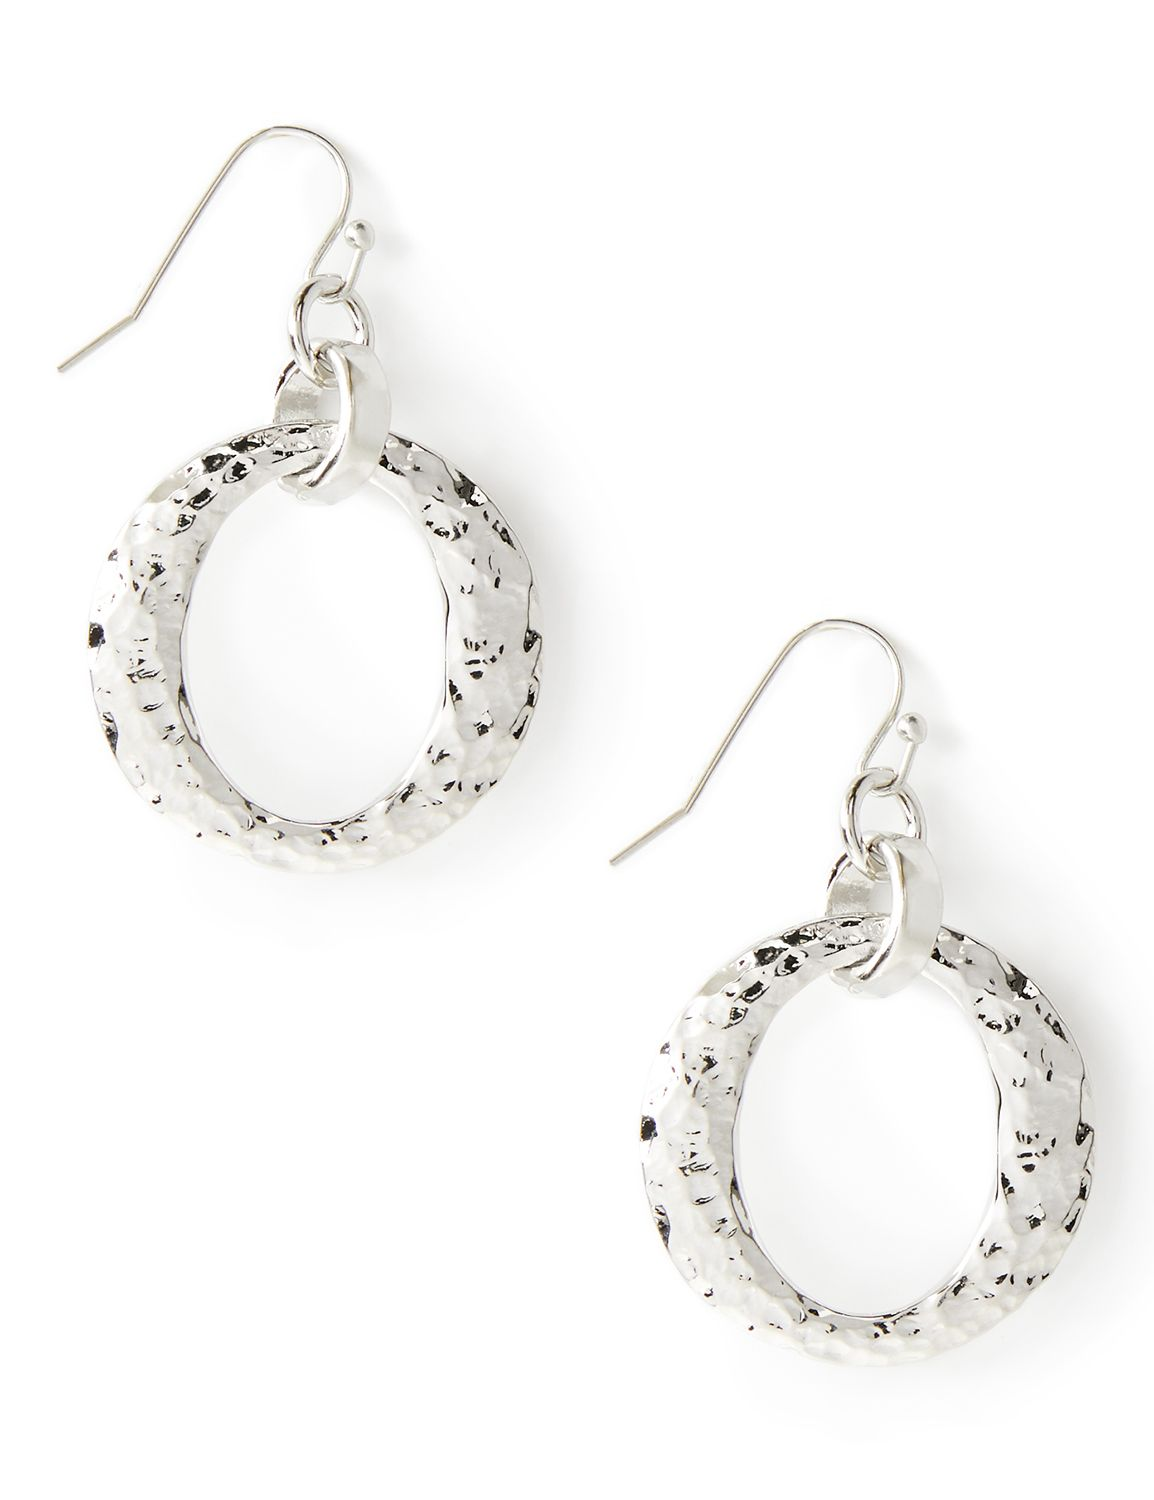 Hammered Drop Earrings NBF Drop hmmrd ring PE 10/21A MP-300096662